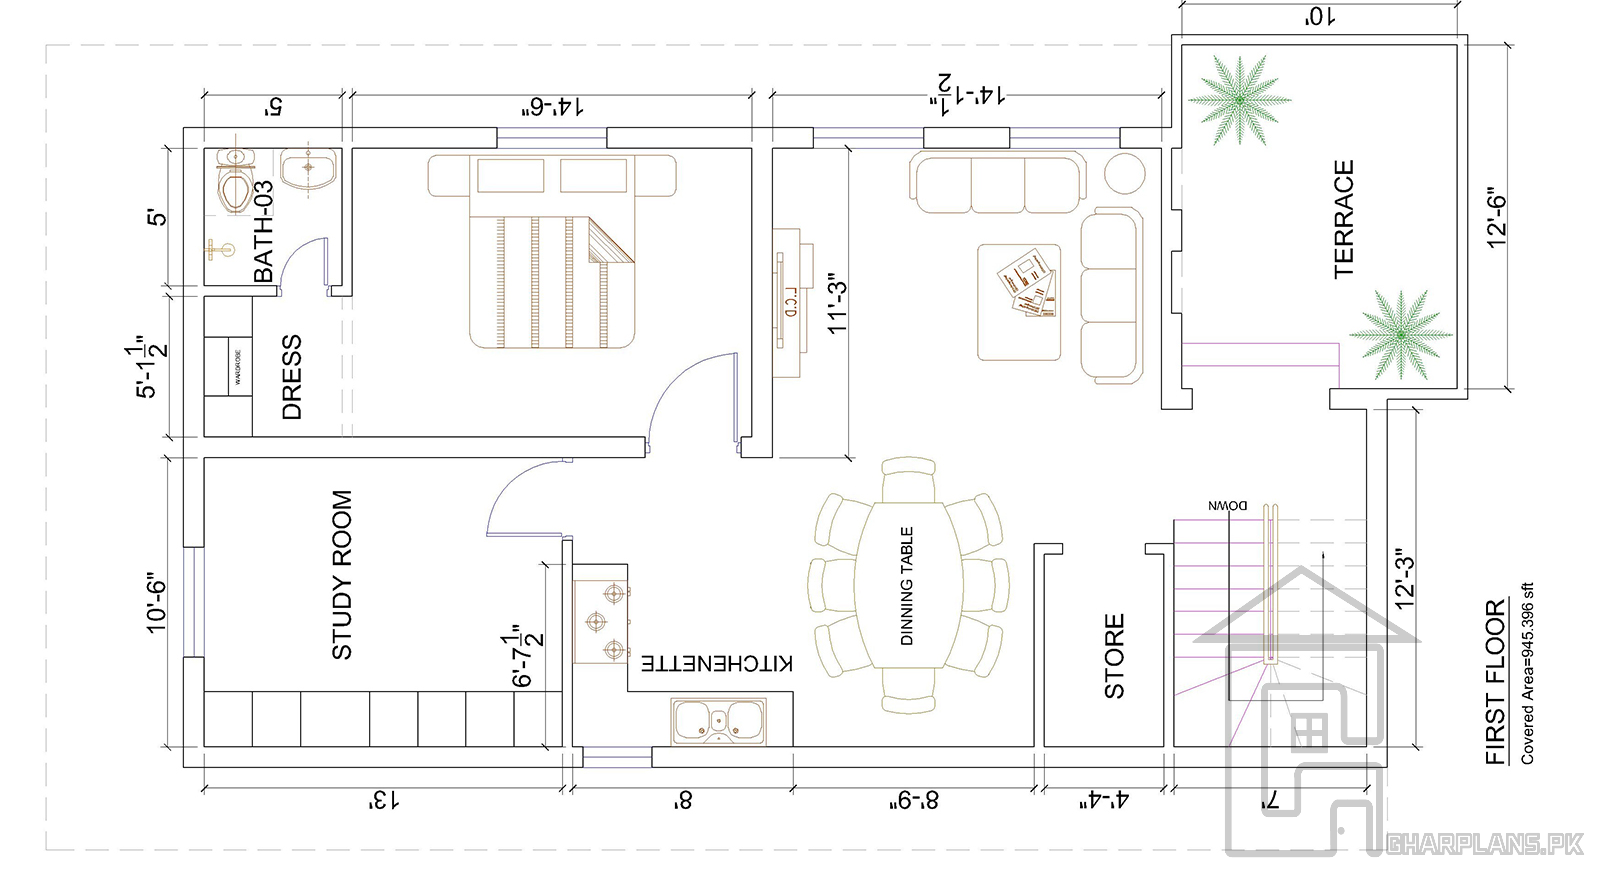 Floor Plan For The First Floor Of 7 Marla House The Floor Plan Includes One Bedroom With Attached Ba House Floor Plans Mansion Floor Plan Basement House Plans